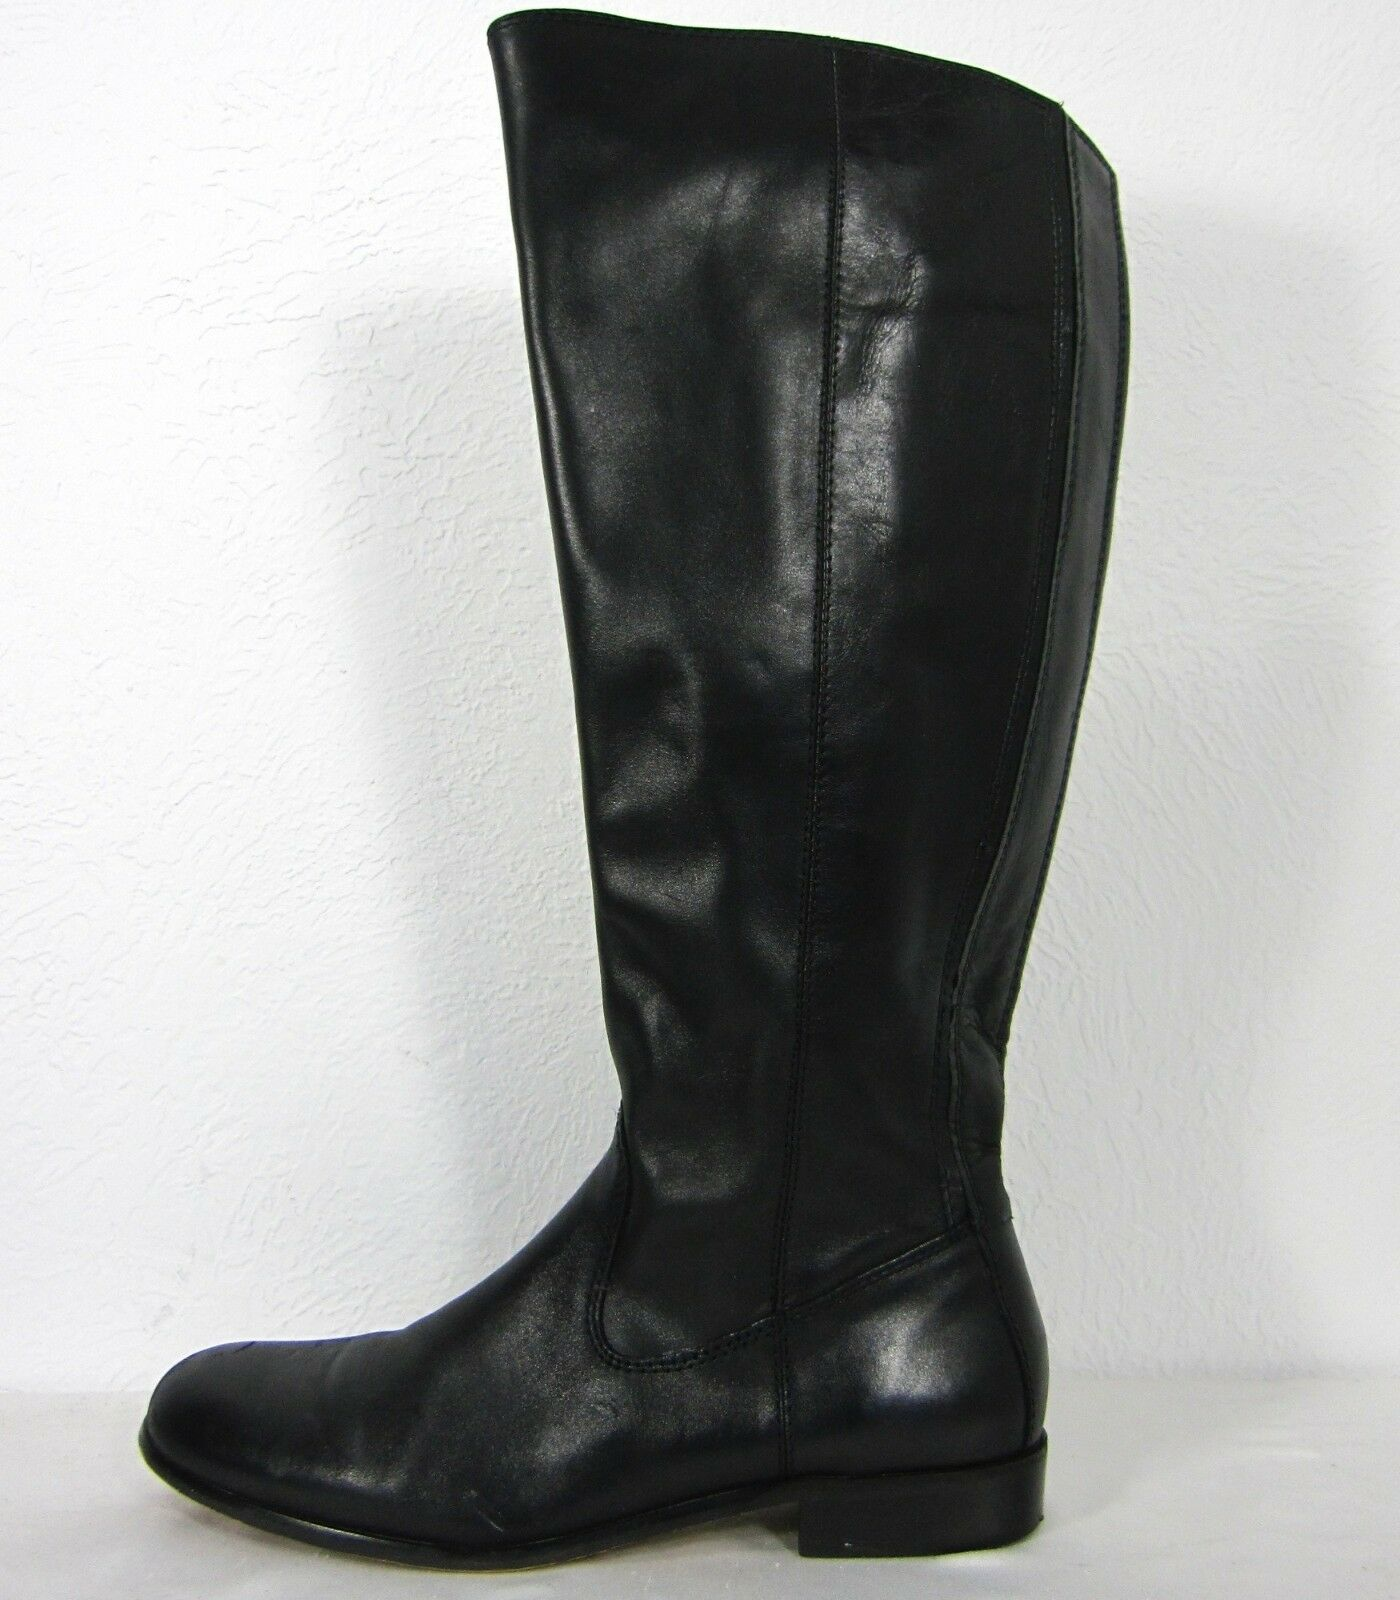 KENNTH COLE NEU YORK UPPER LEATHER TALL FULL ZIP BOOTS SIZE 7.5 (US)  BLACK